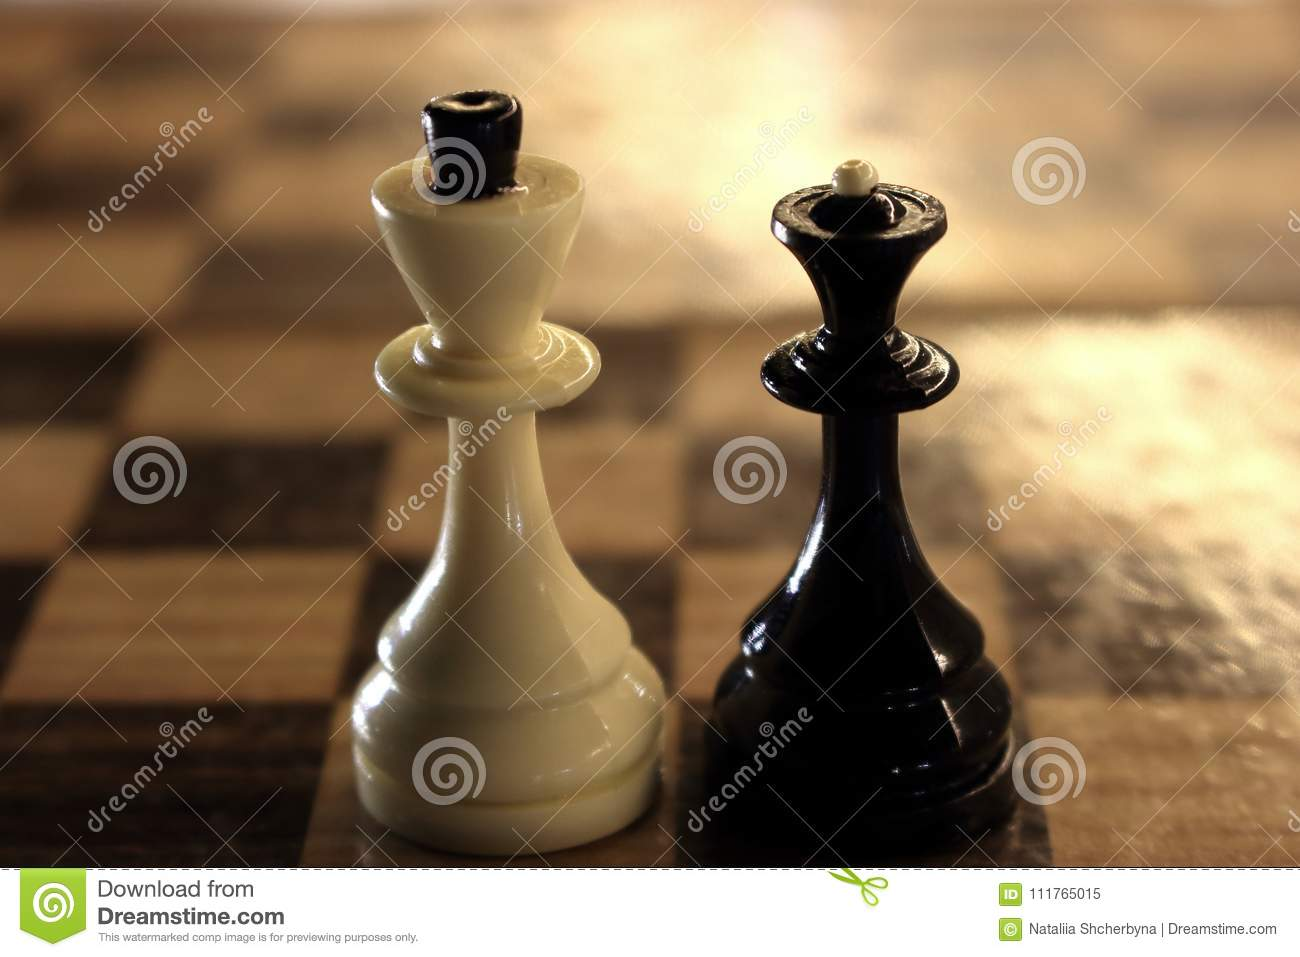 King and queen chess figures on chessboard white king and black queen competition and